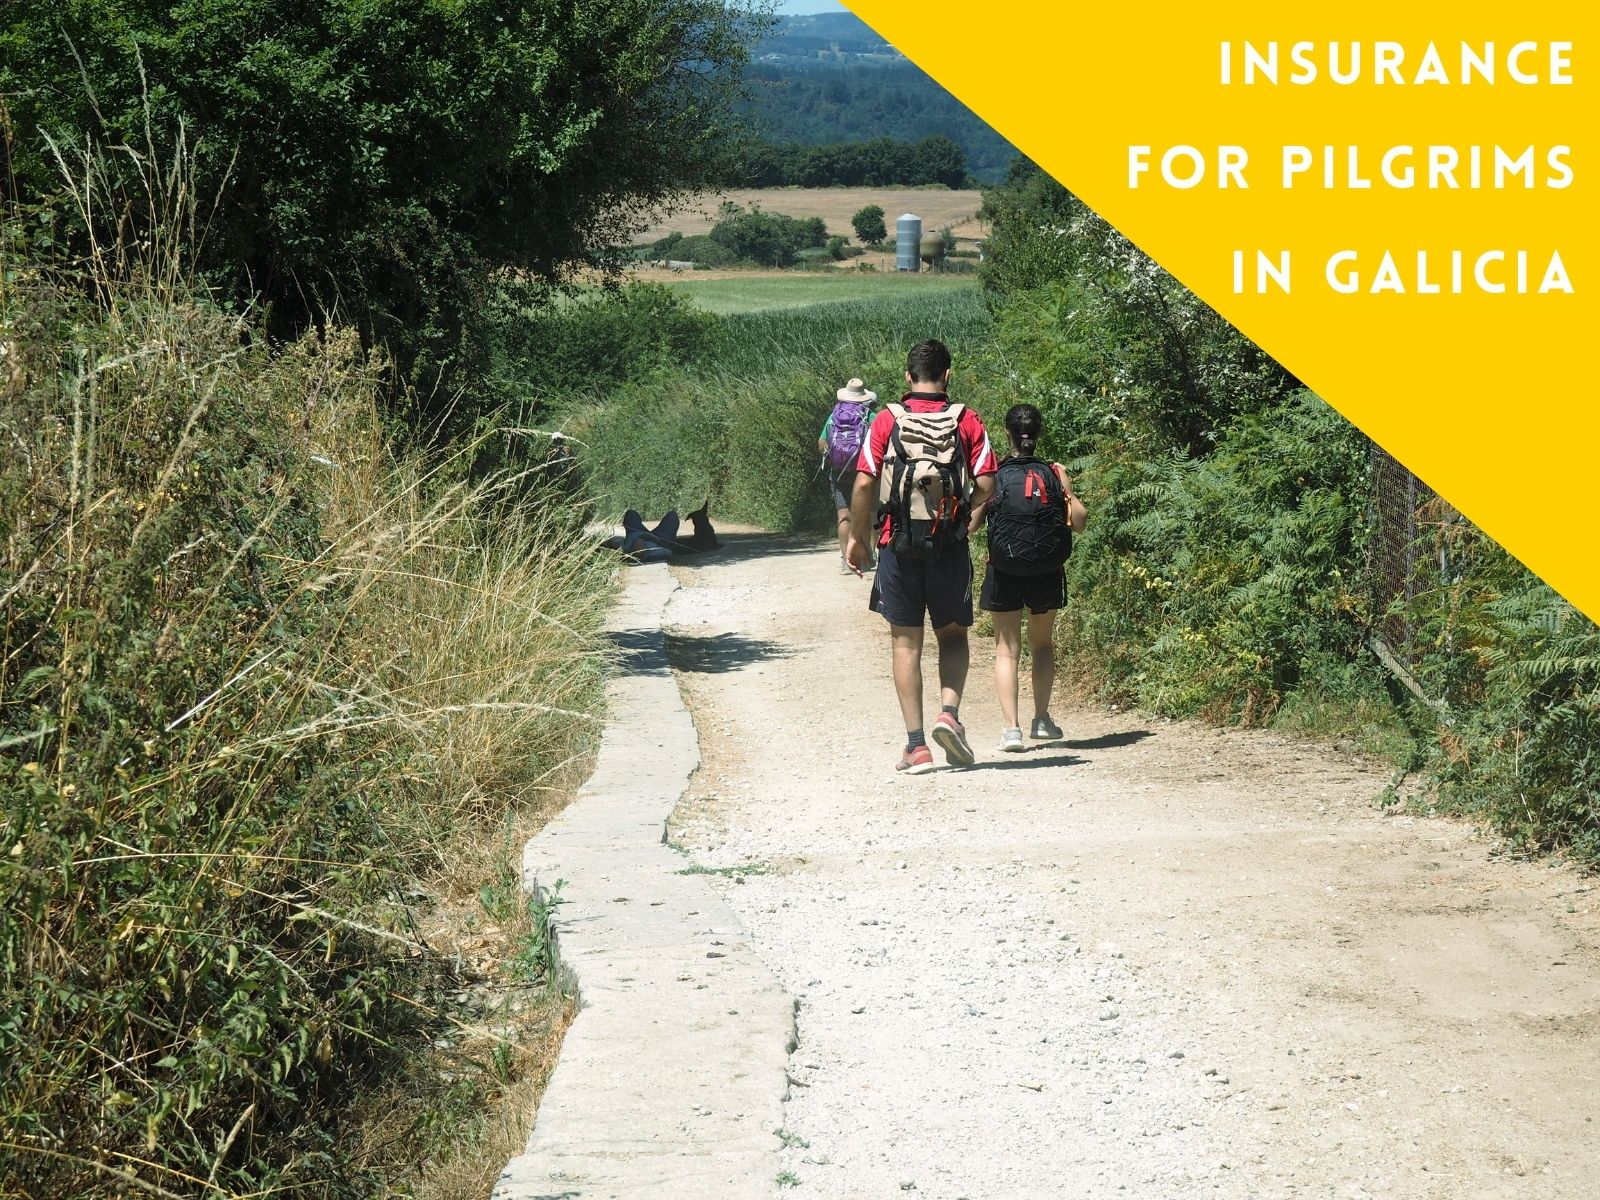 Insurance for pilgrims in Galicia